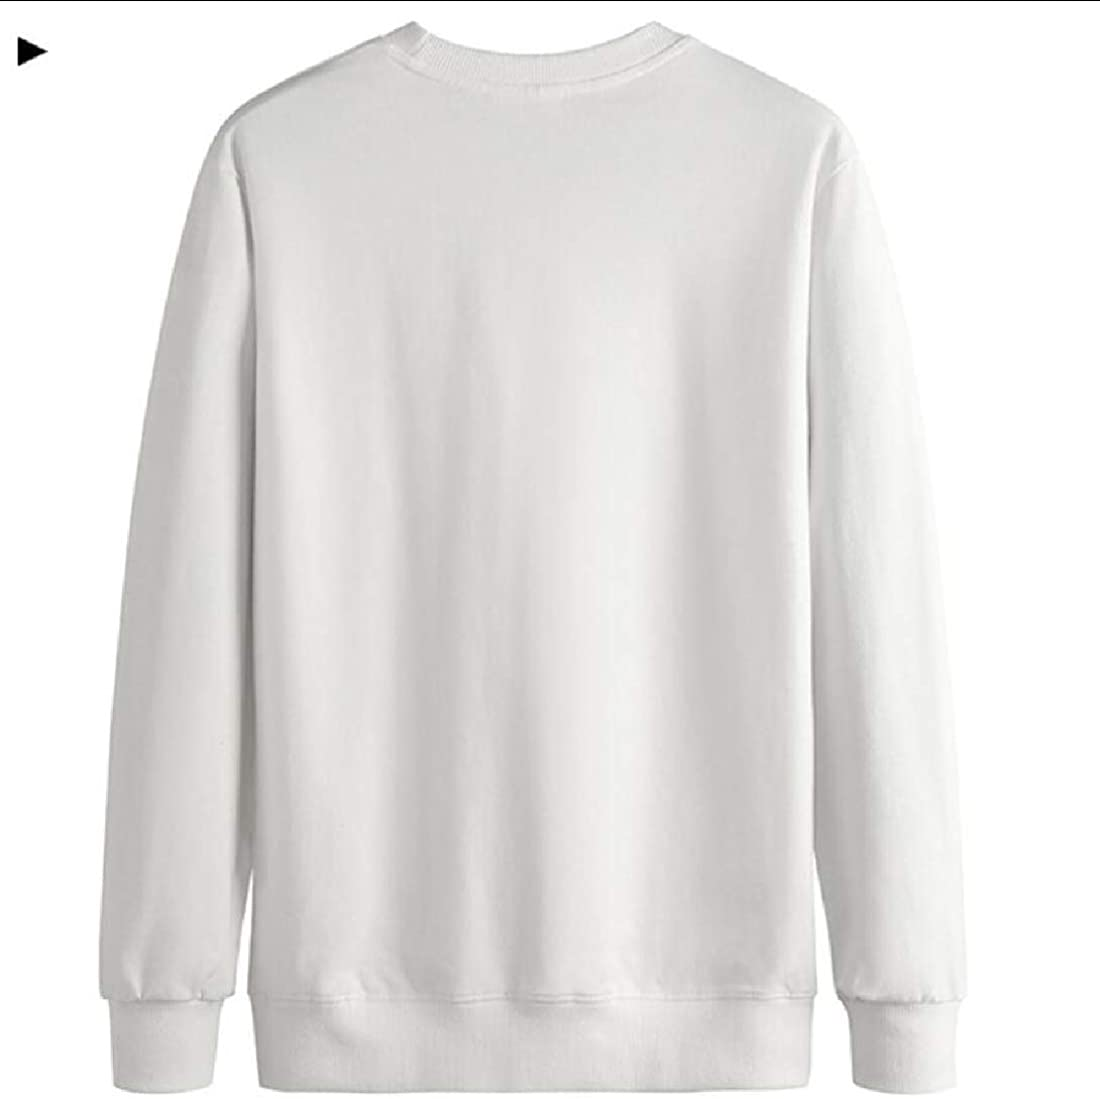 zhaoabao Mens Regular-Fit Solid Color Loose Pullover Long Sleeve Crew Neck Sweatshirt